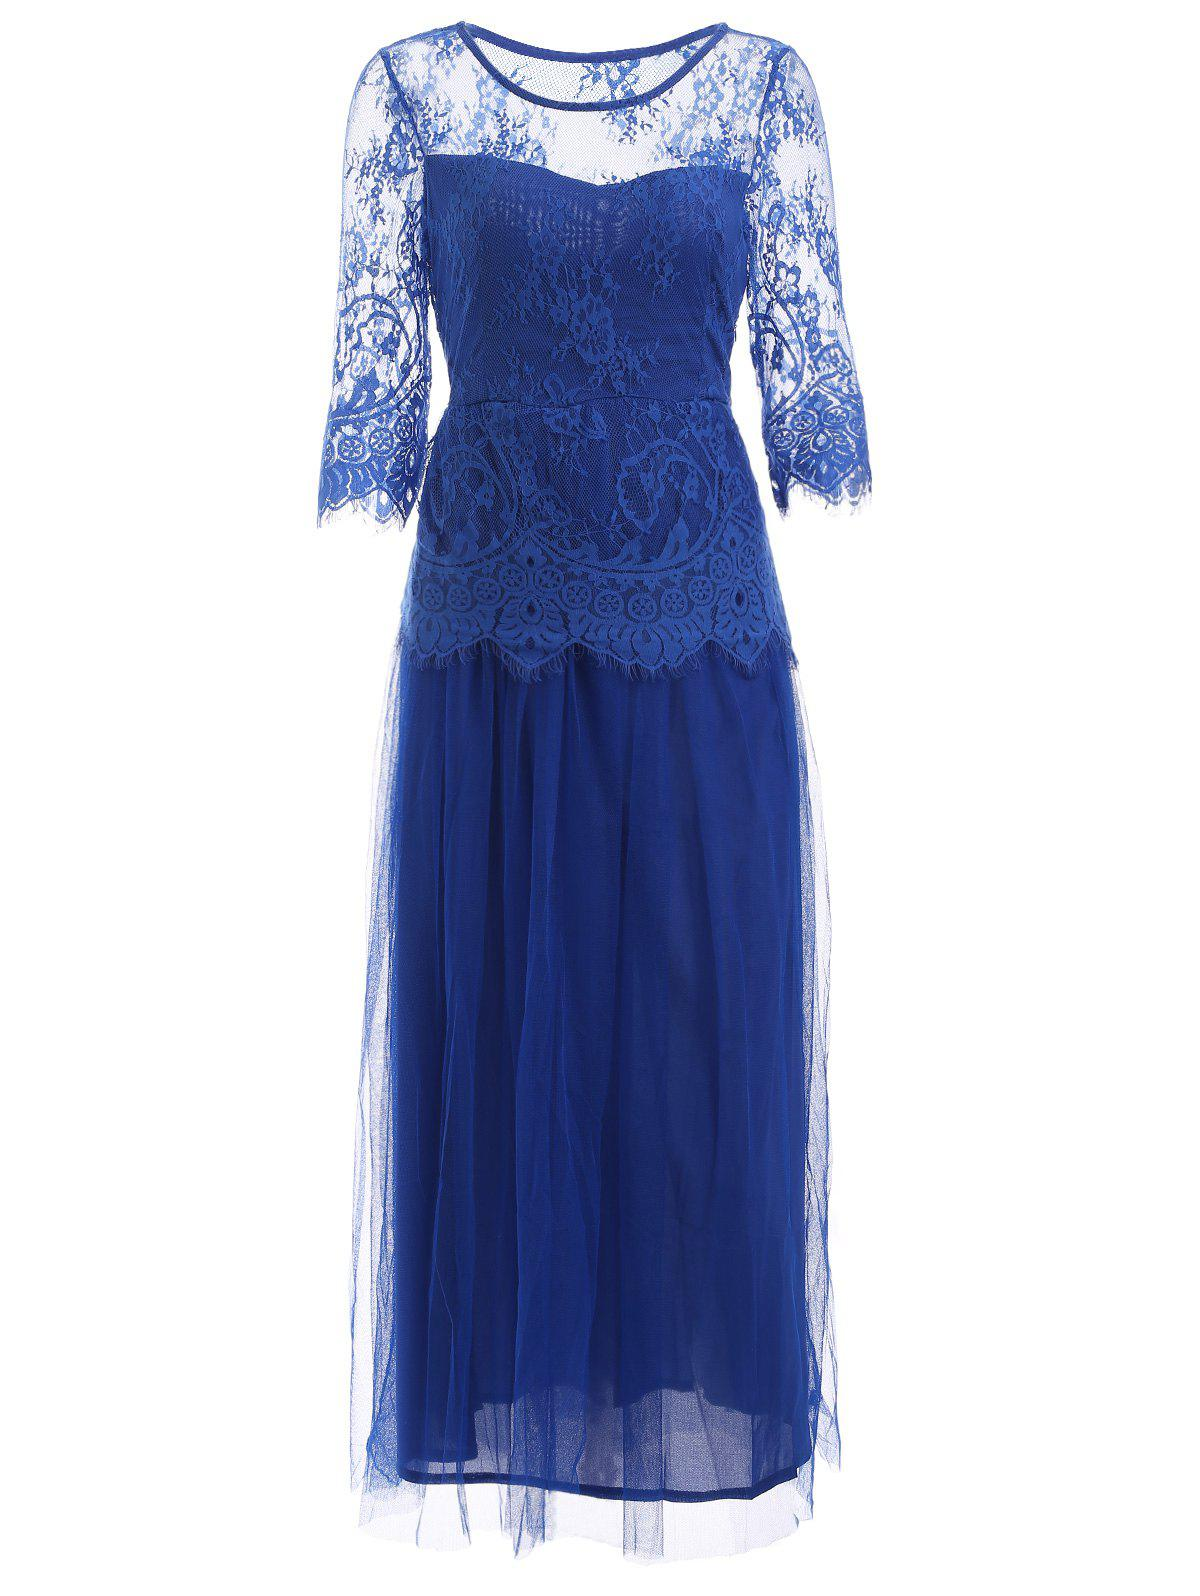 Sweet Women's Embroidered Lace Dress - BLUE L